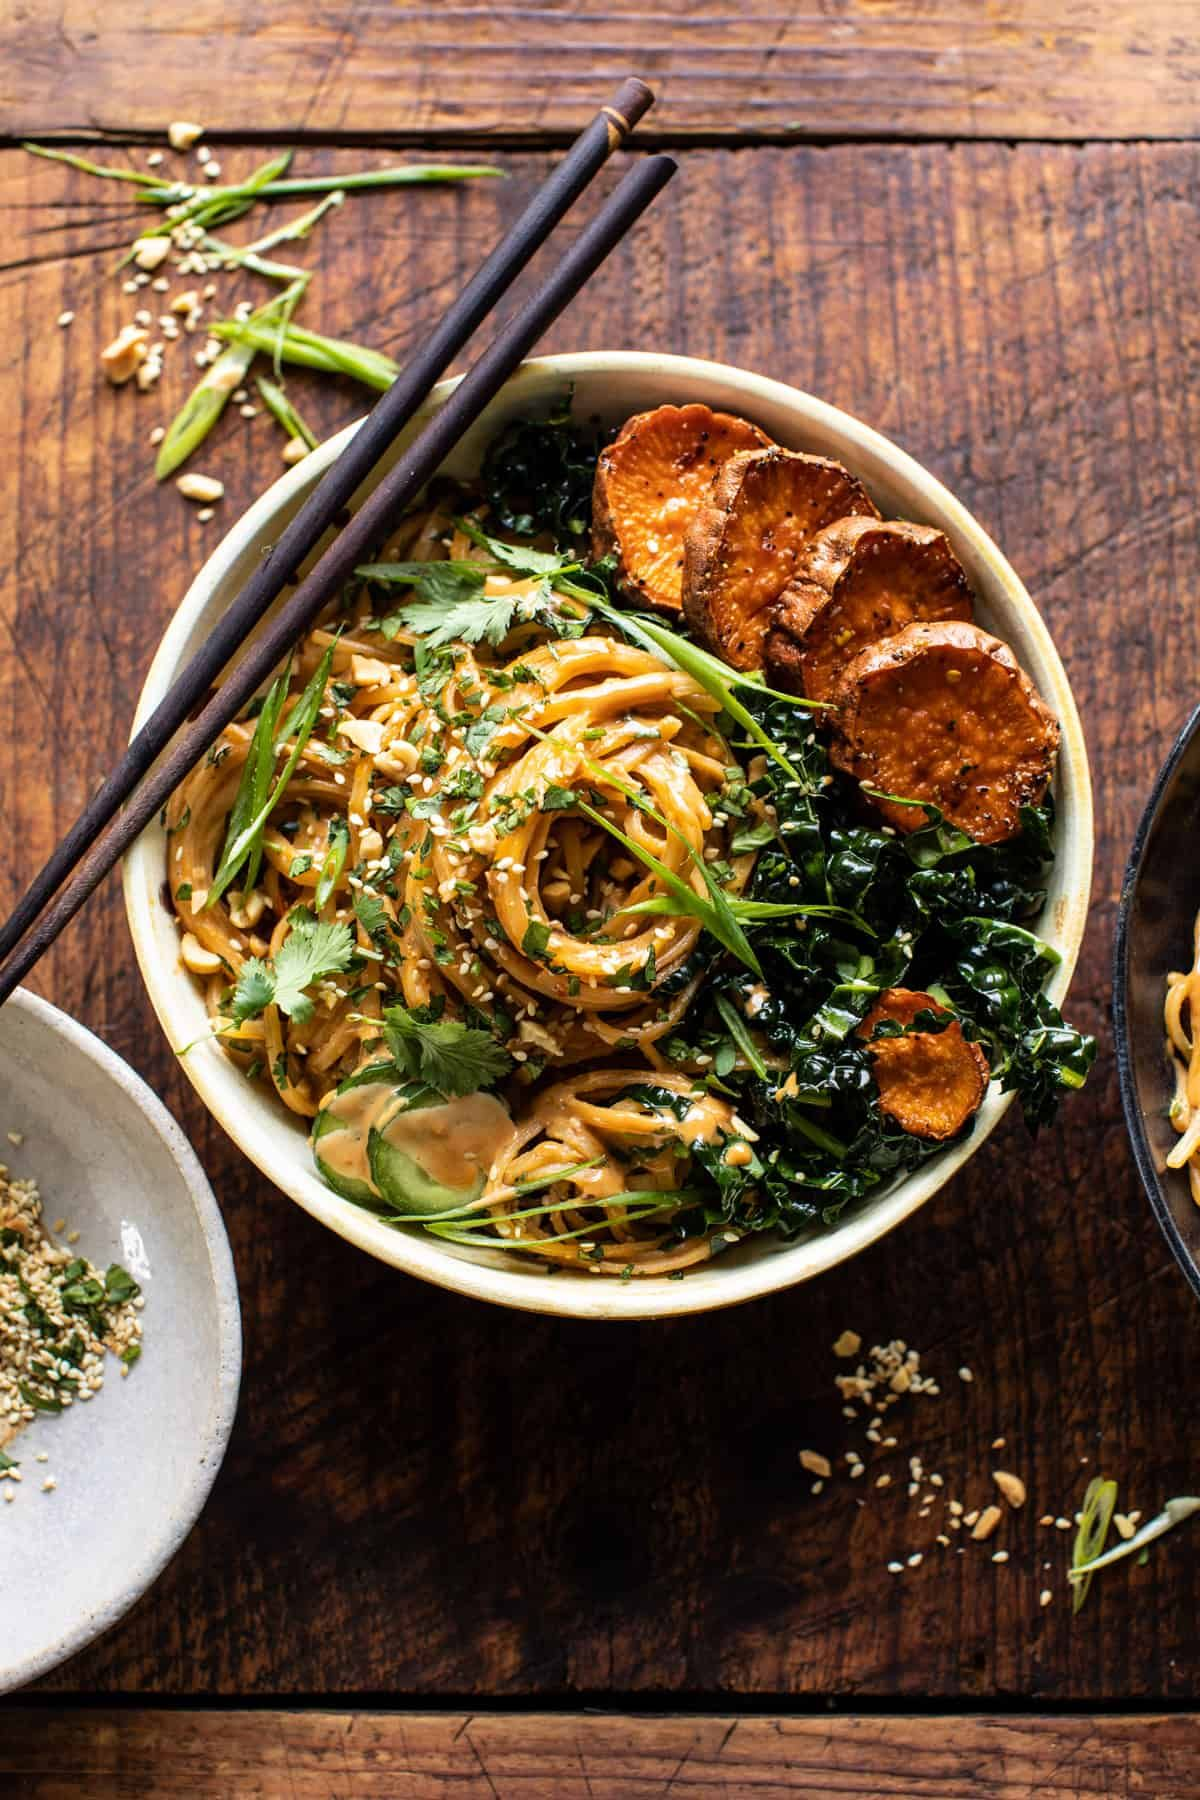 Easy, quick-cooking (30 min), Saucy Tahini Noodles with Honey'd Sweet Potatoes...the perfect colorful, healthy, saucy noodle to enjoy any night of the week!